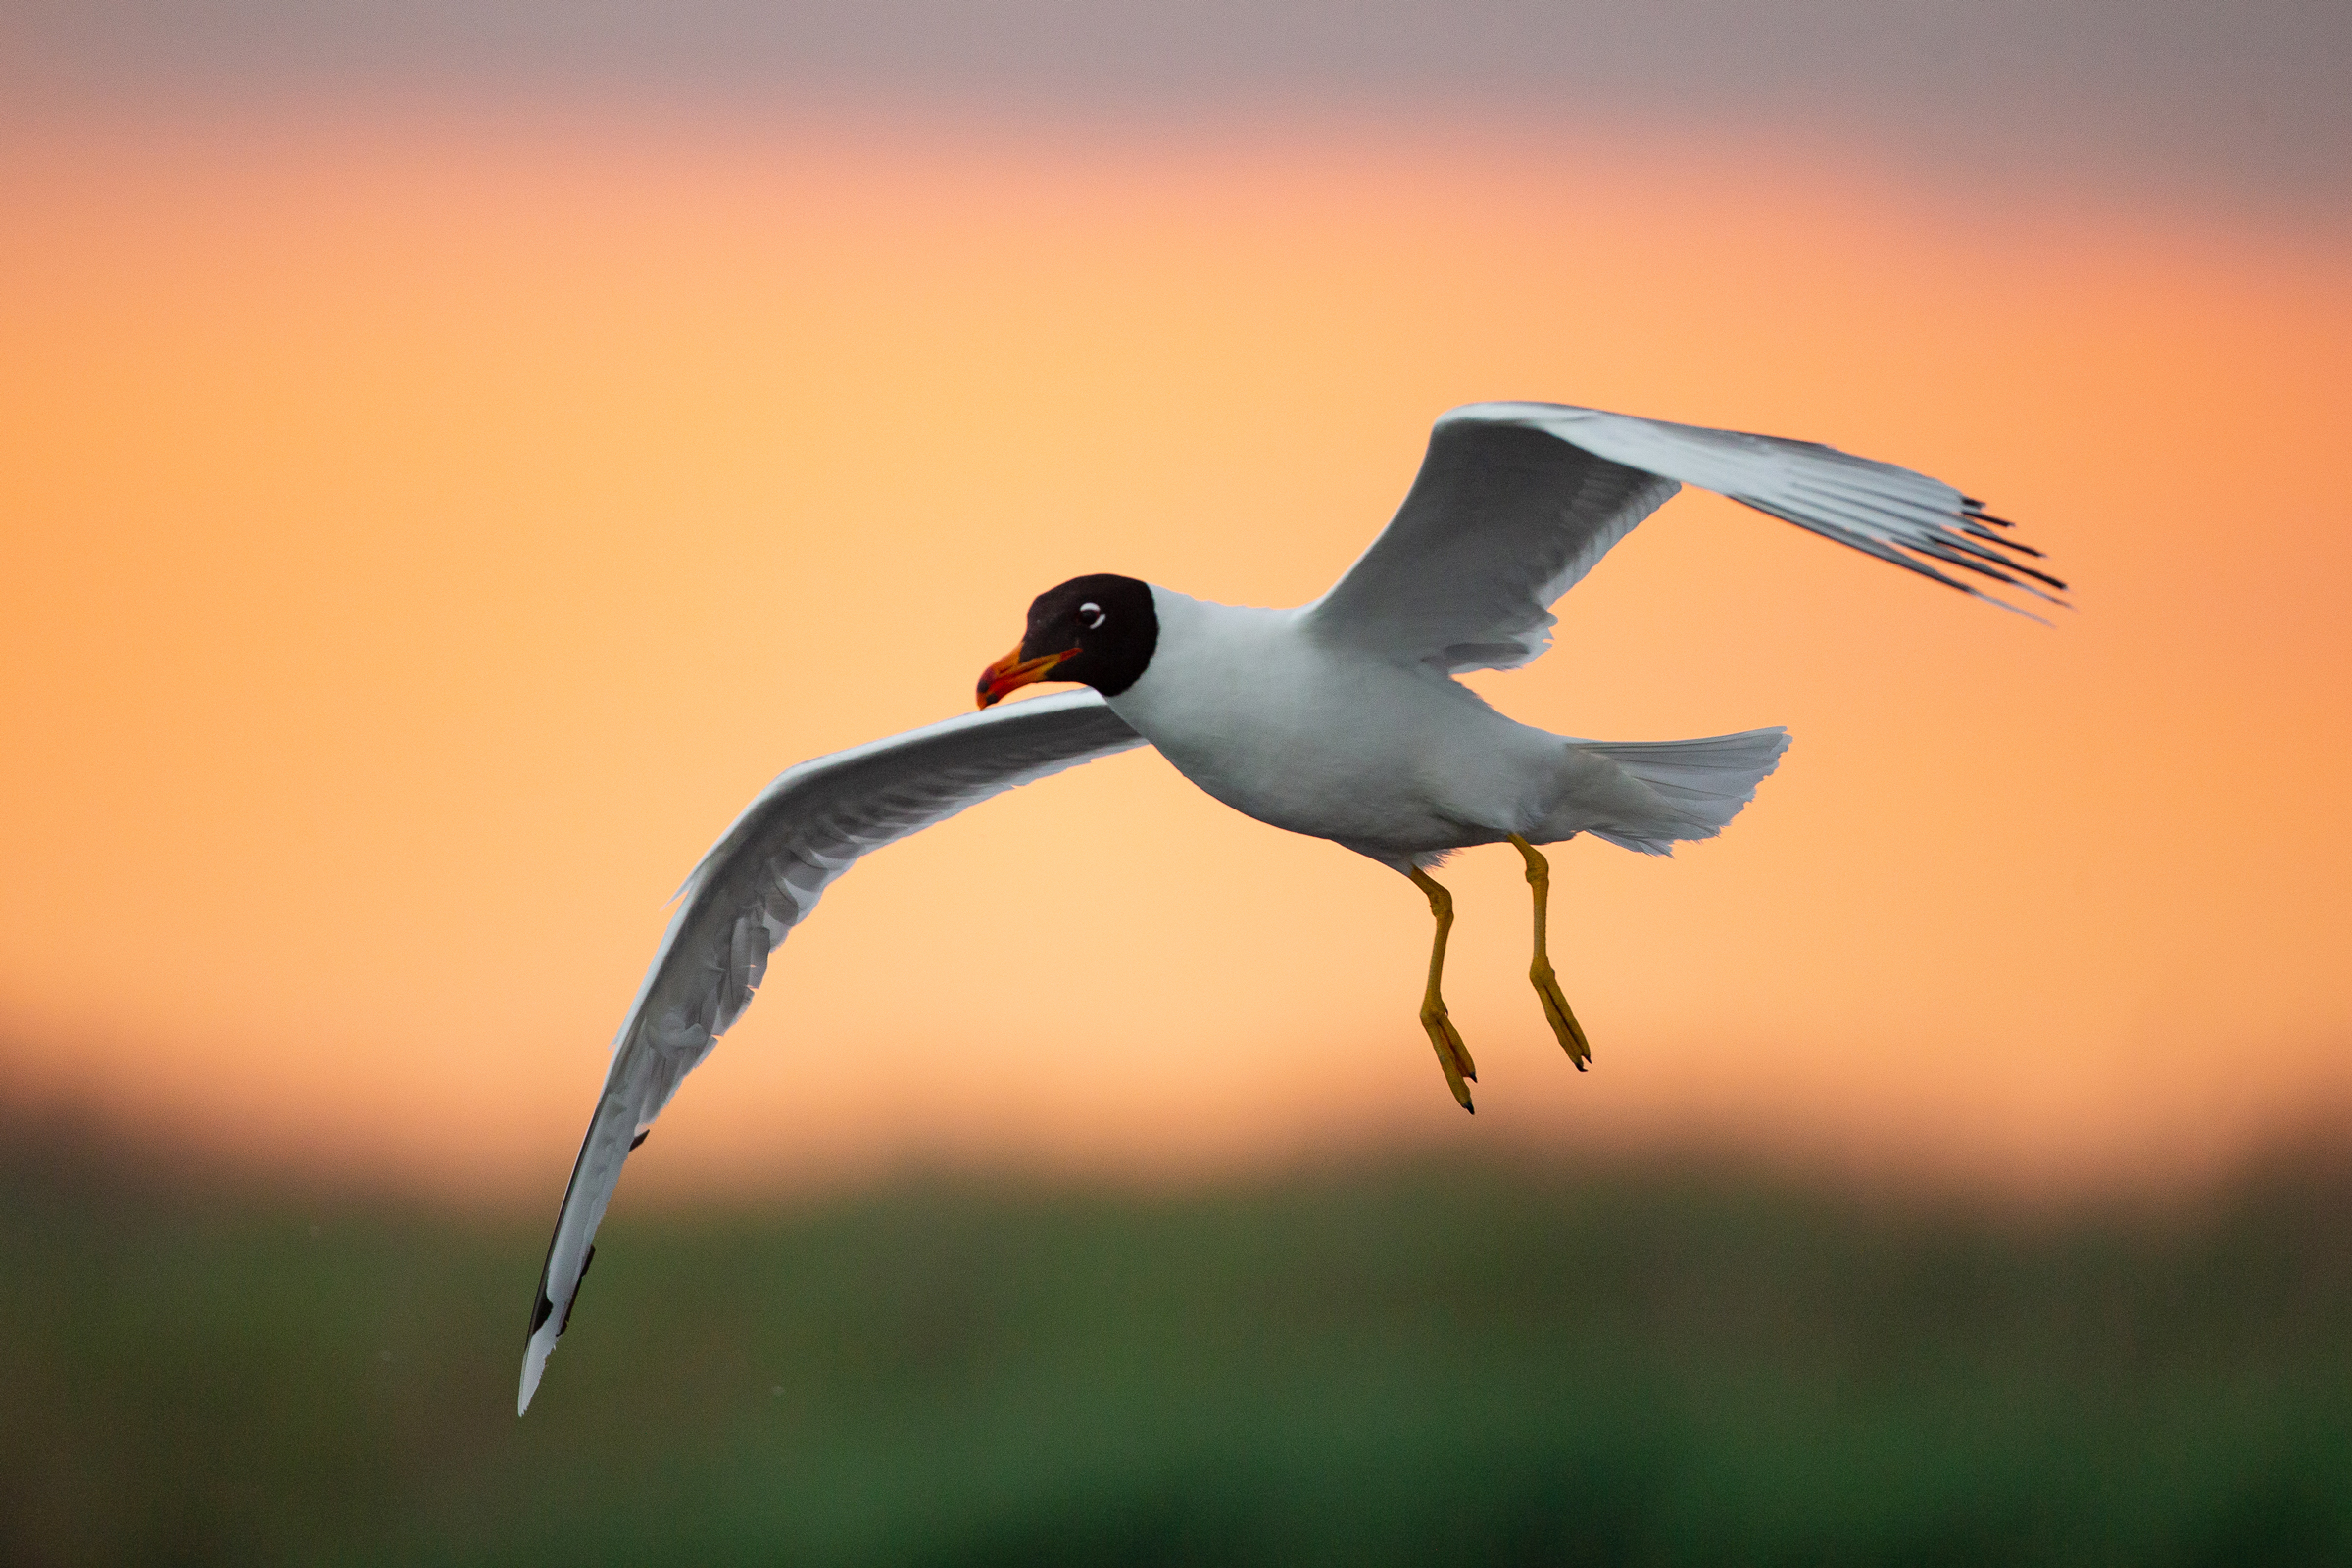 Pallas's Gull against a fiery sunset in the Danube Delta